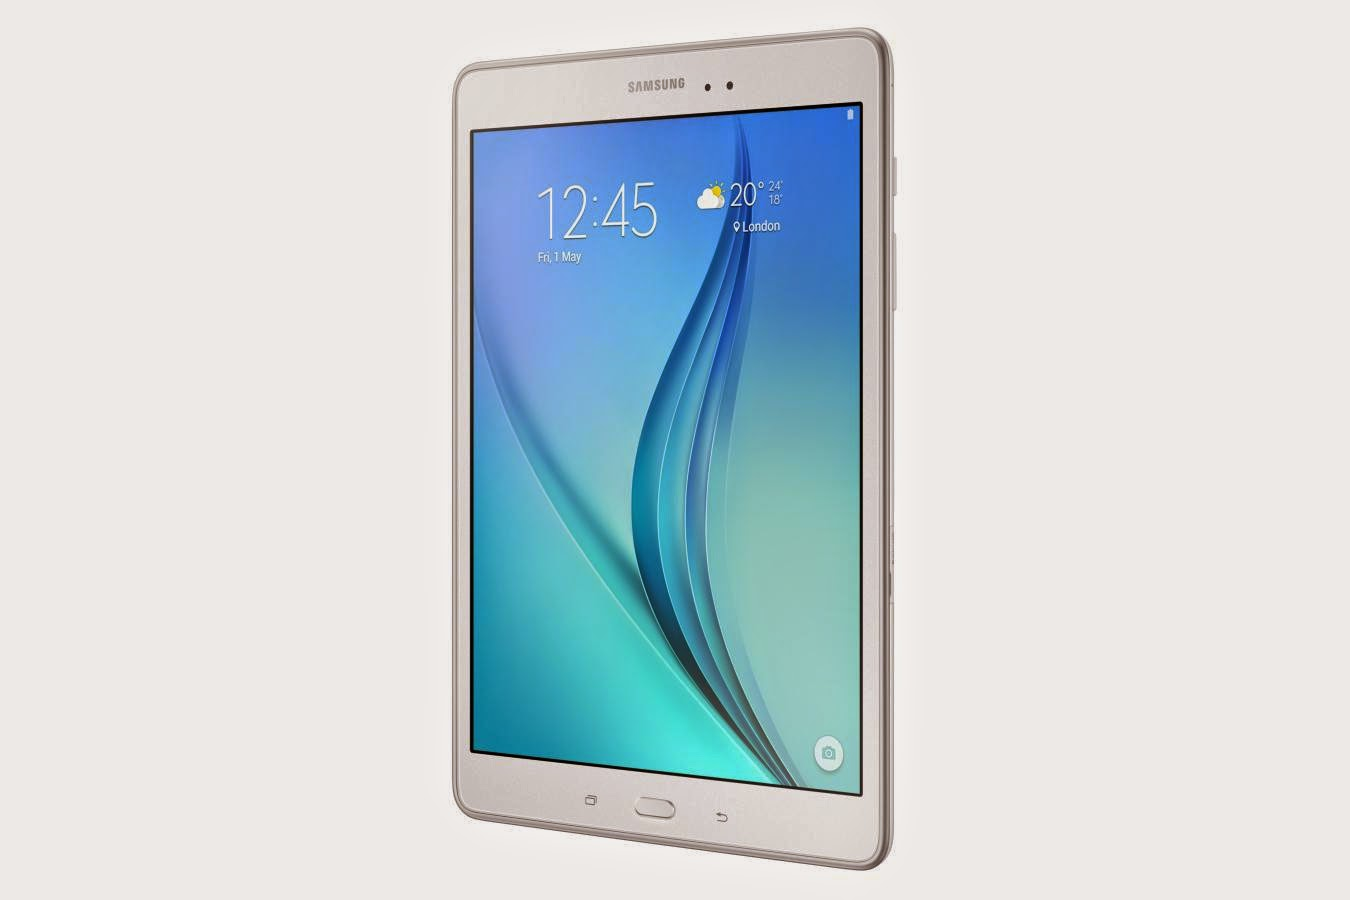 Samsung Galaxy Tab A 9.7 Features and Reviews - Updatetech